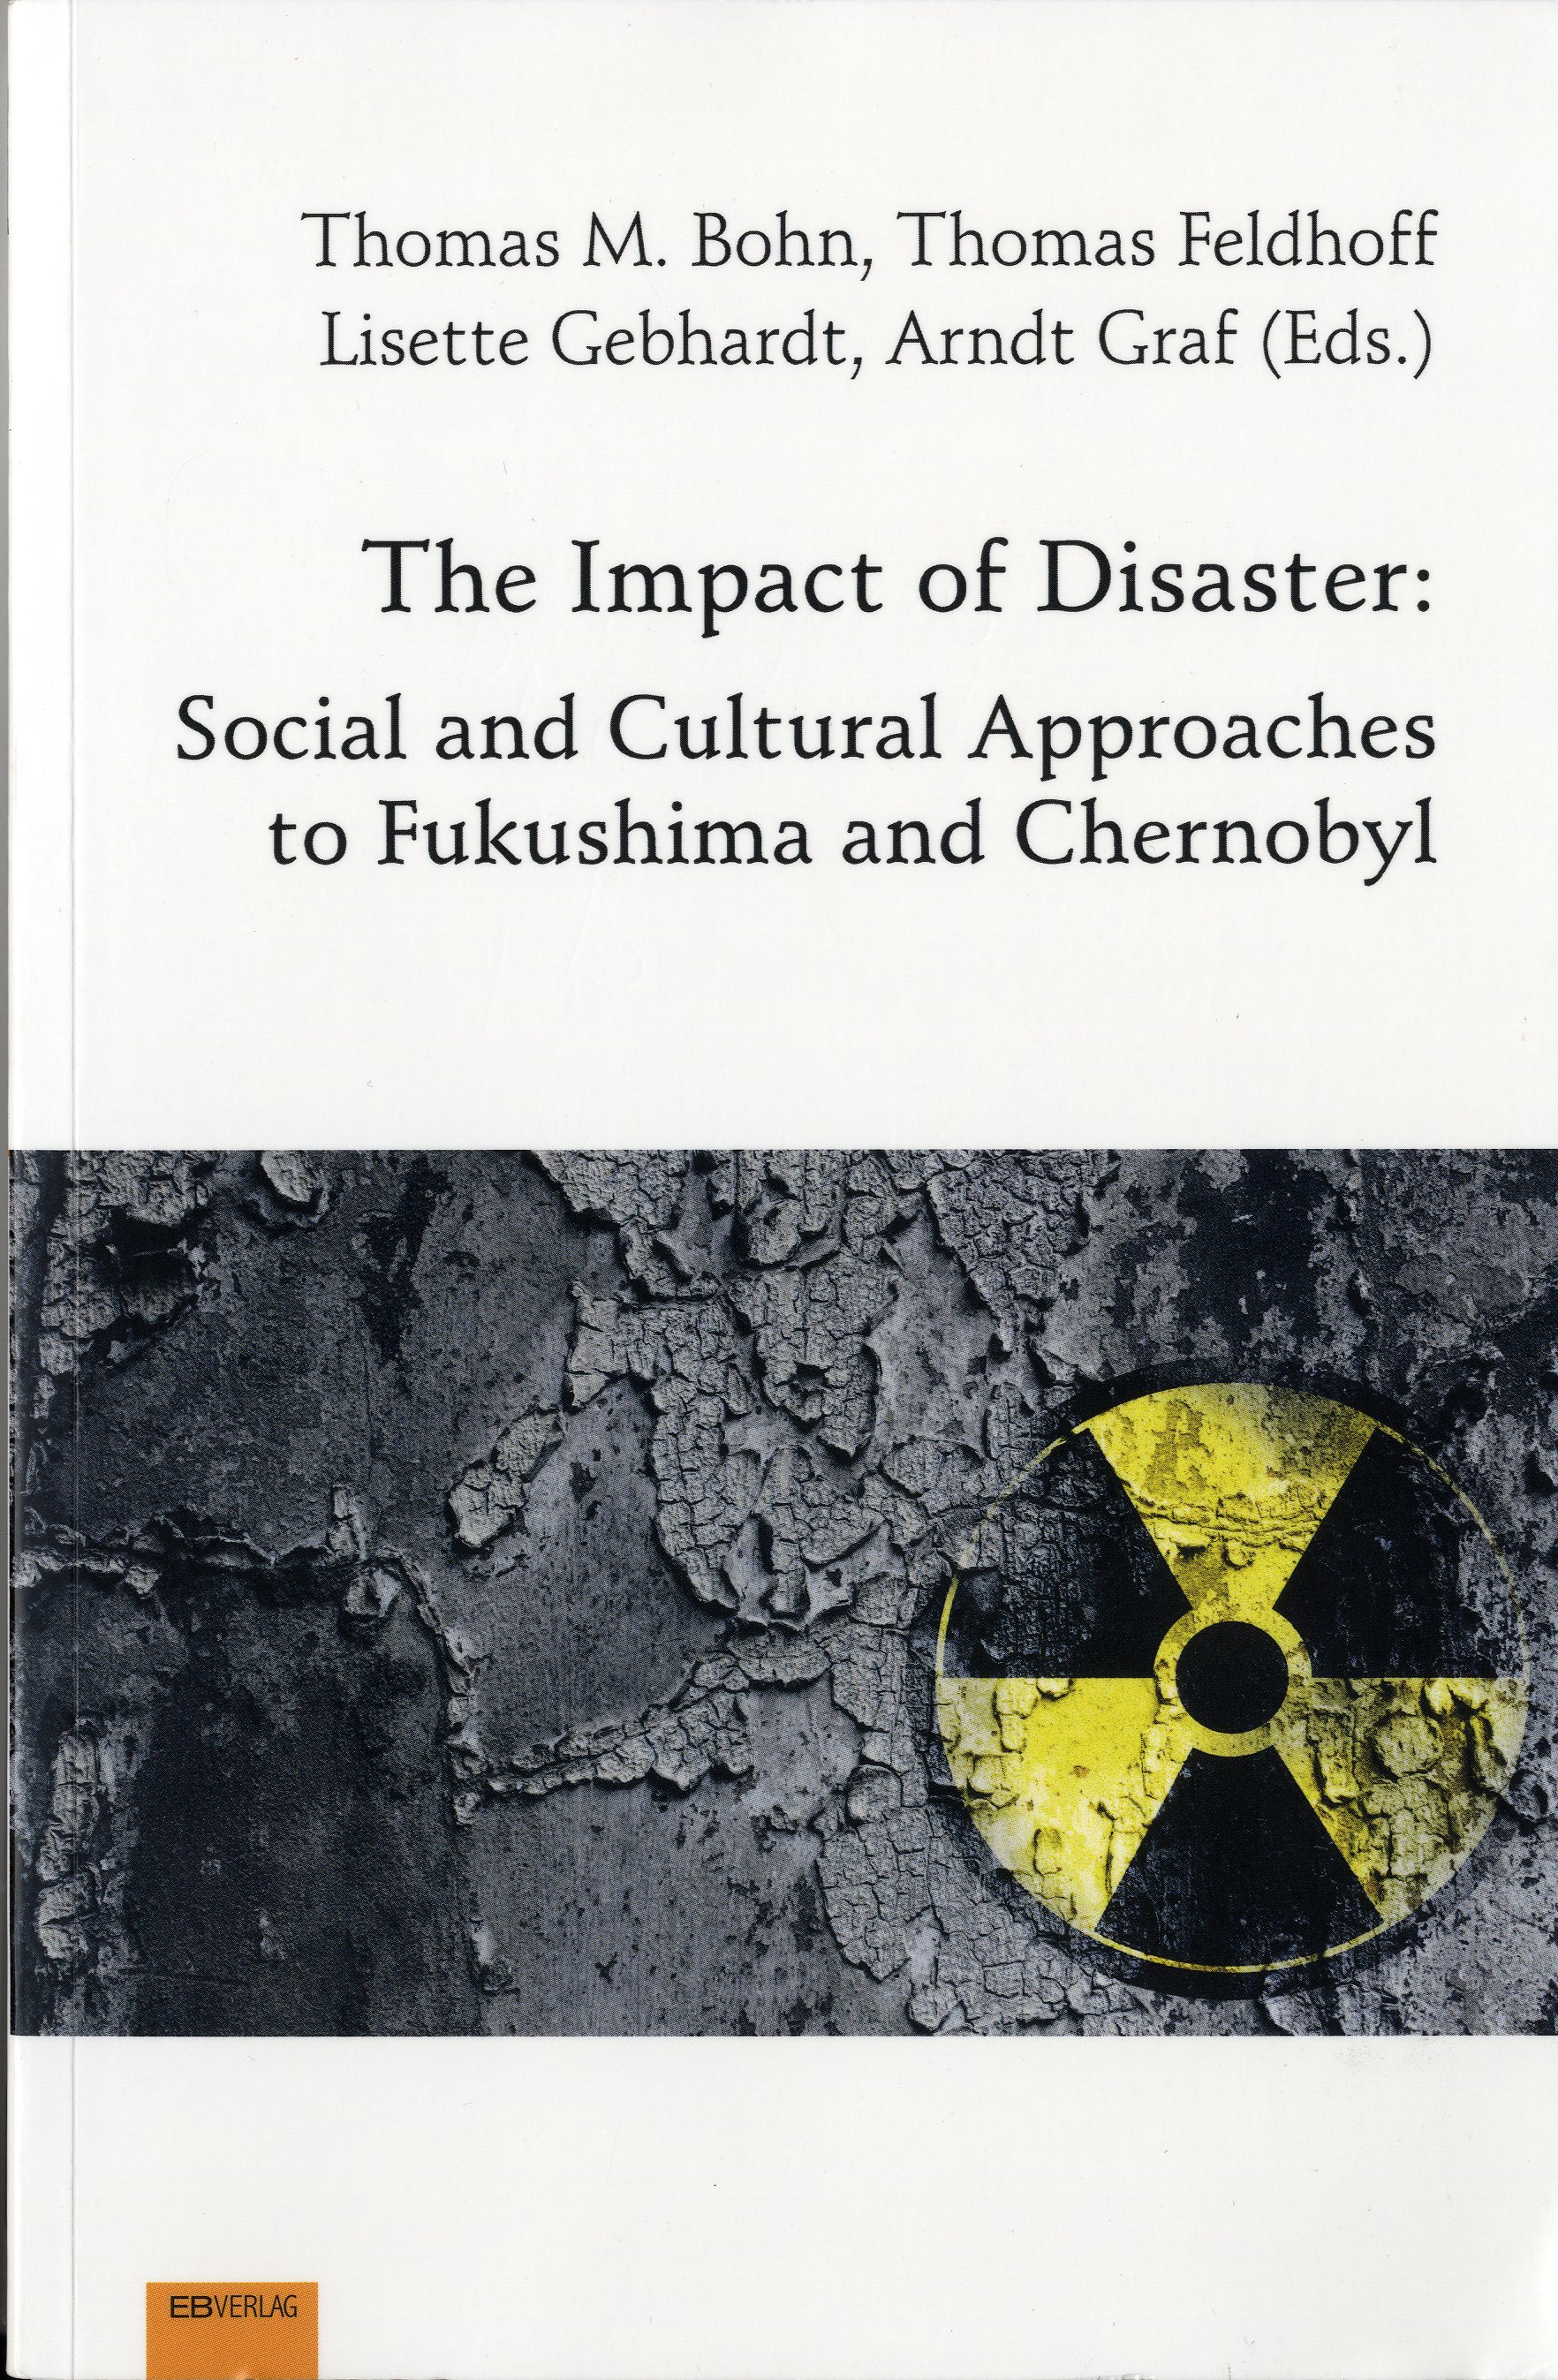 T.M.Bohn, T.Feldhoff, L.Gebhardt, A.Graf (Eds.): The Impact of Disaster: Social and Cultural Approaches to Fukushima and Chernobyl.